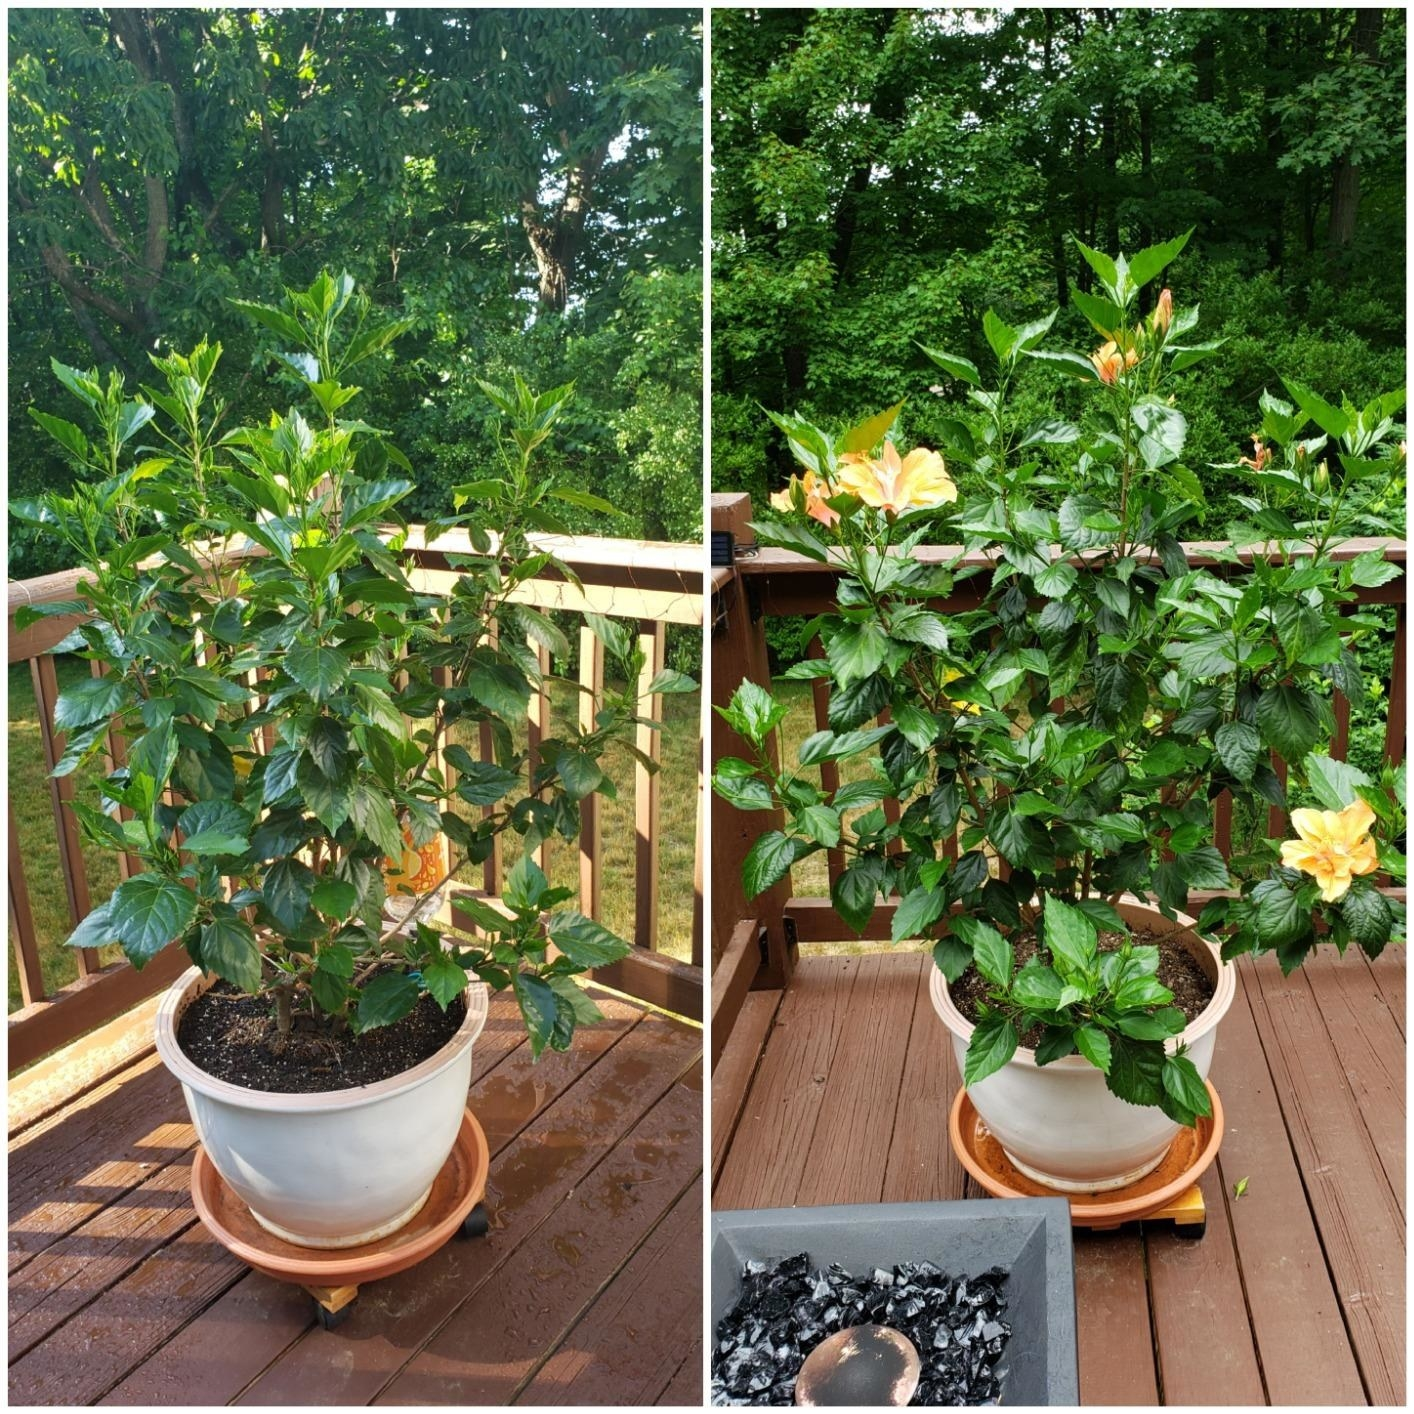 A hibiscus before Miracle Gro / the same plant after using the fertilizer